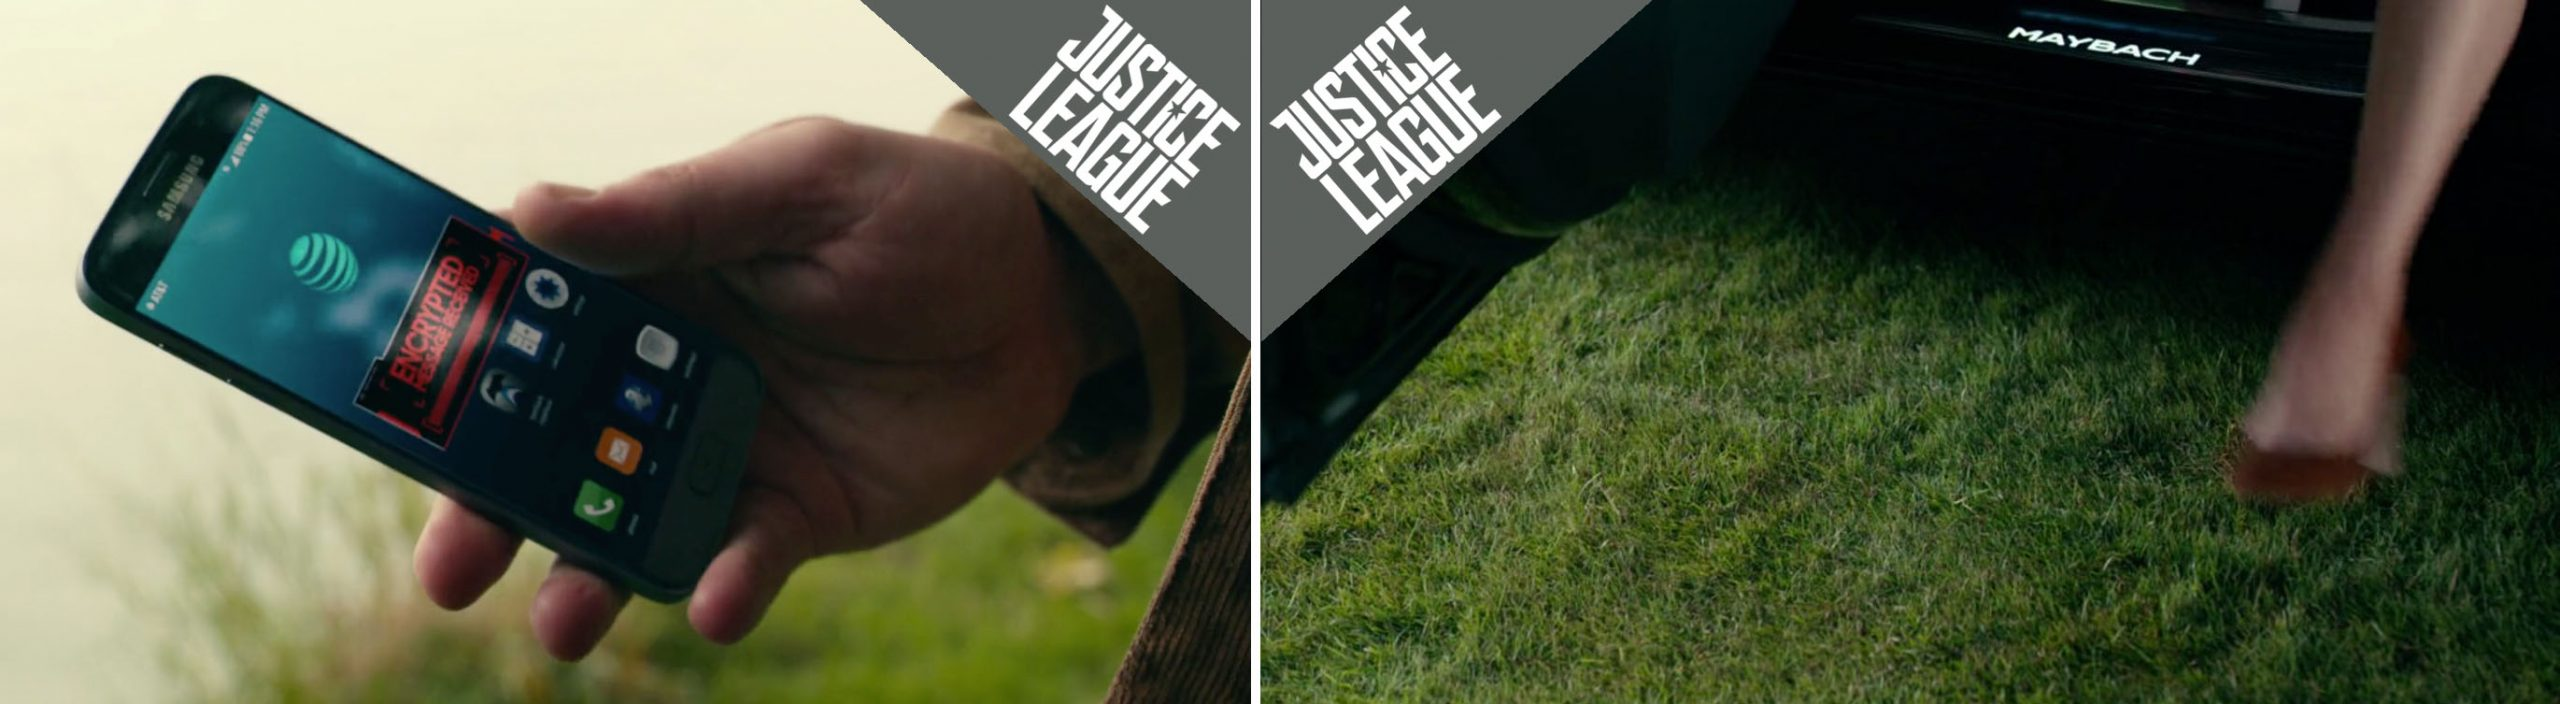 AT&T and Maybach product placements in Zack Snyder's Justice League